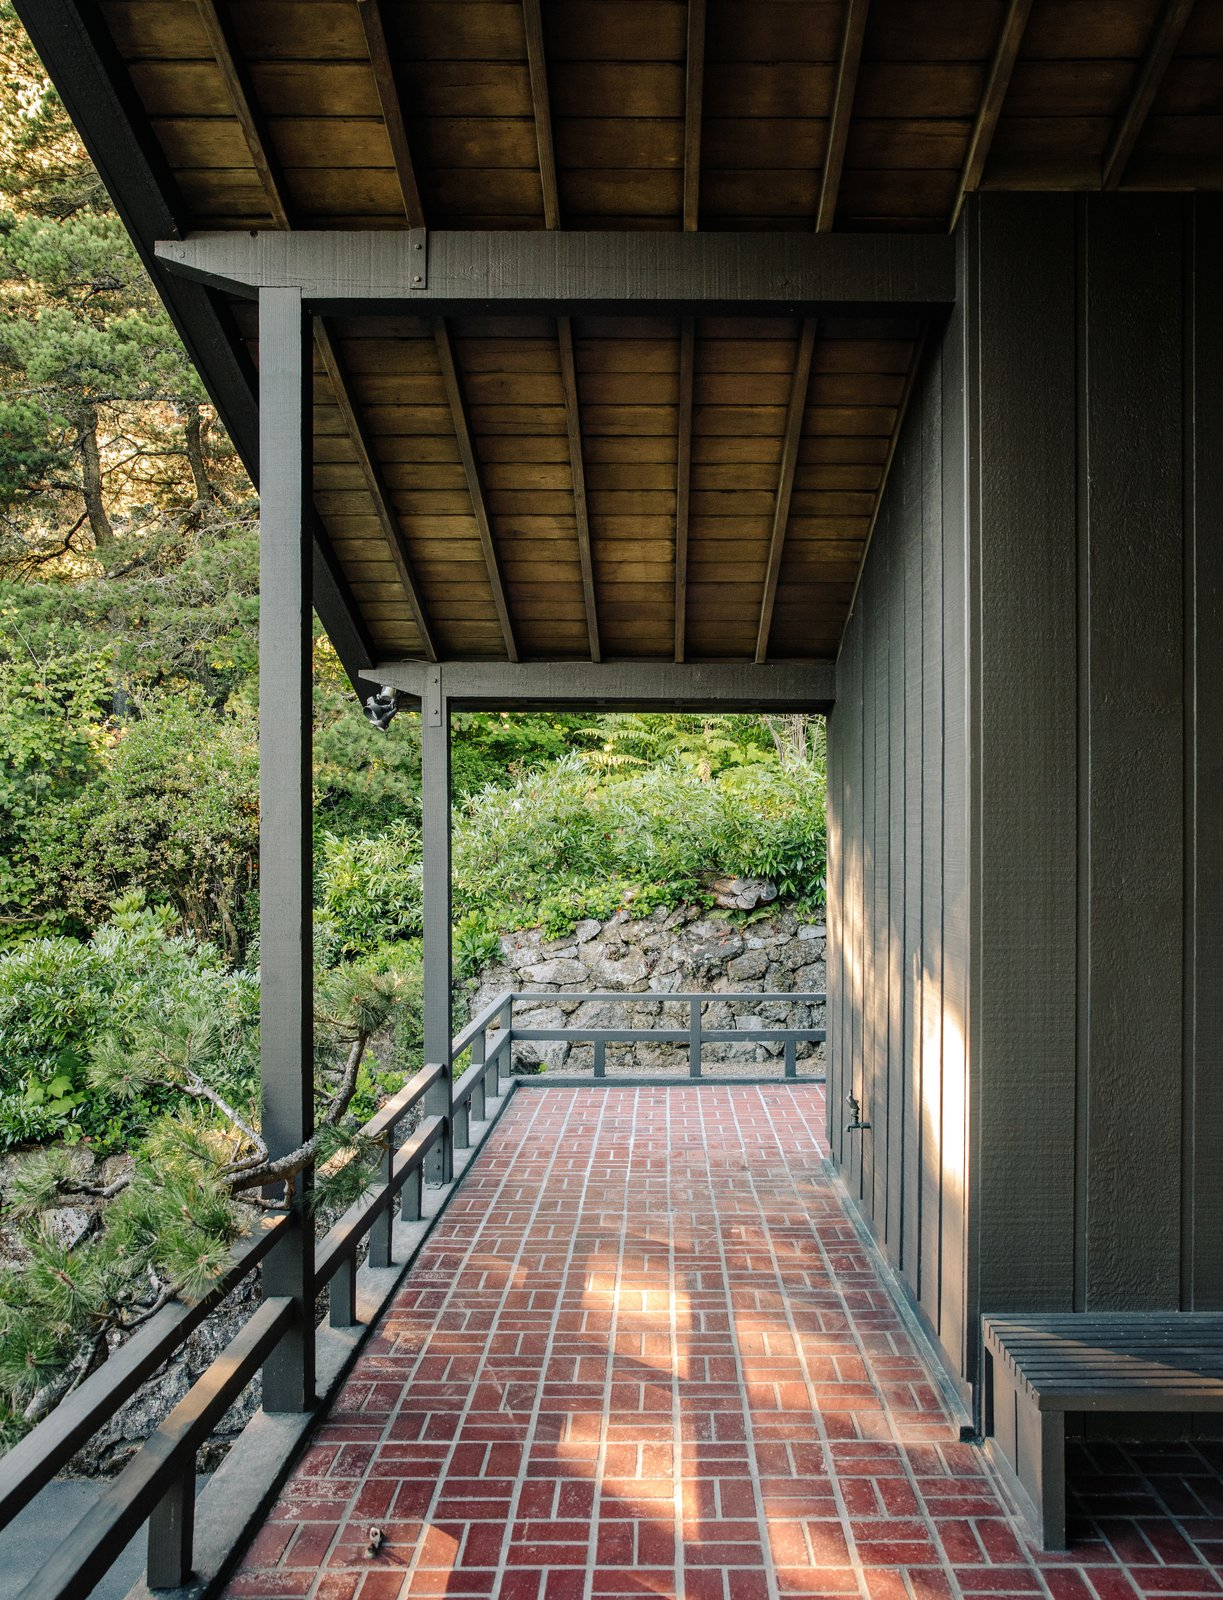 The 2,300-square-foot home's overhangs shelter its porches. Tagged: Outdoor, Pavers Patio, Porch, Deck, Stone Patio, Porch, Deck, Trees, Boulders, and Shrubs.  Photo 10 of 15 in Nearly 80 Years Later, an Architect Rescues a Japanese-Inspired  Masterwork Designed by His Father